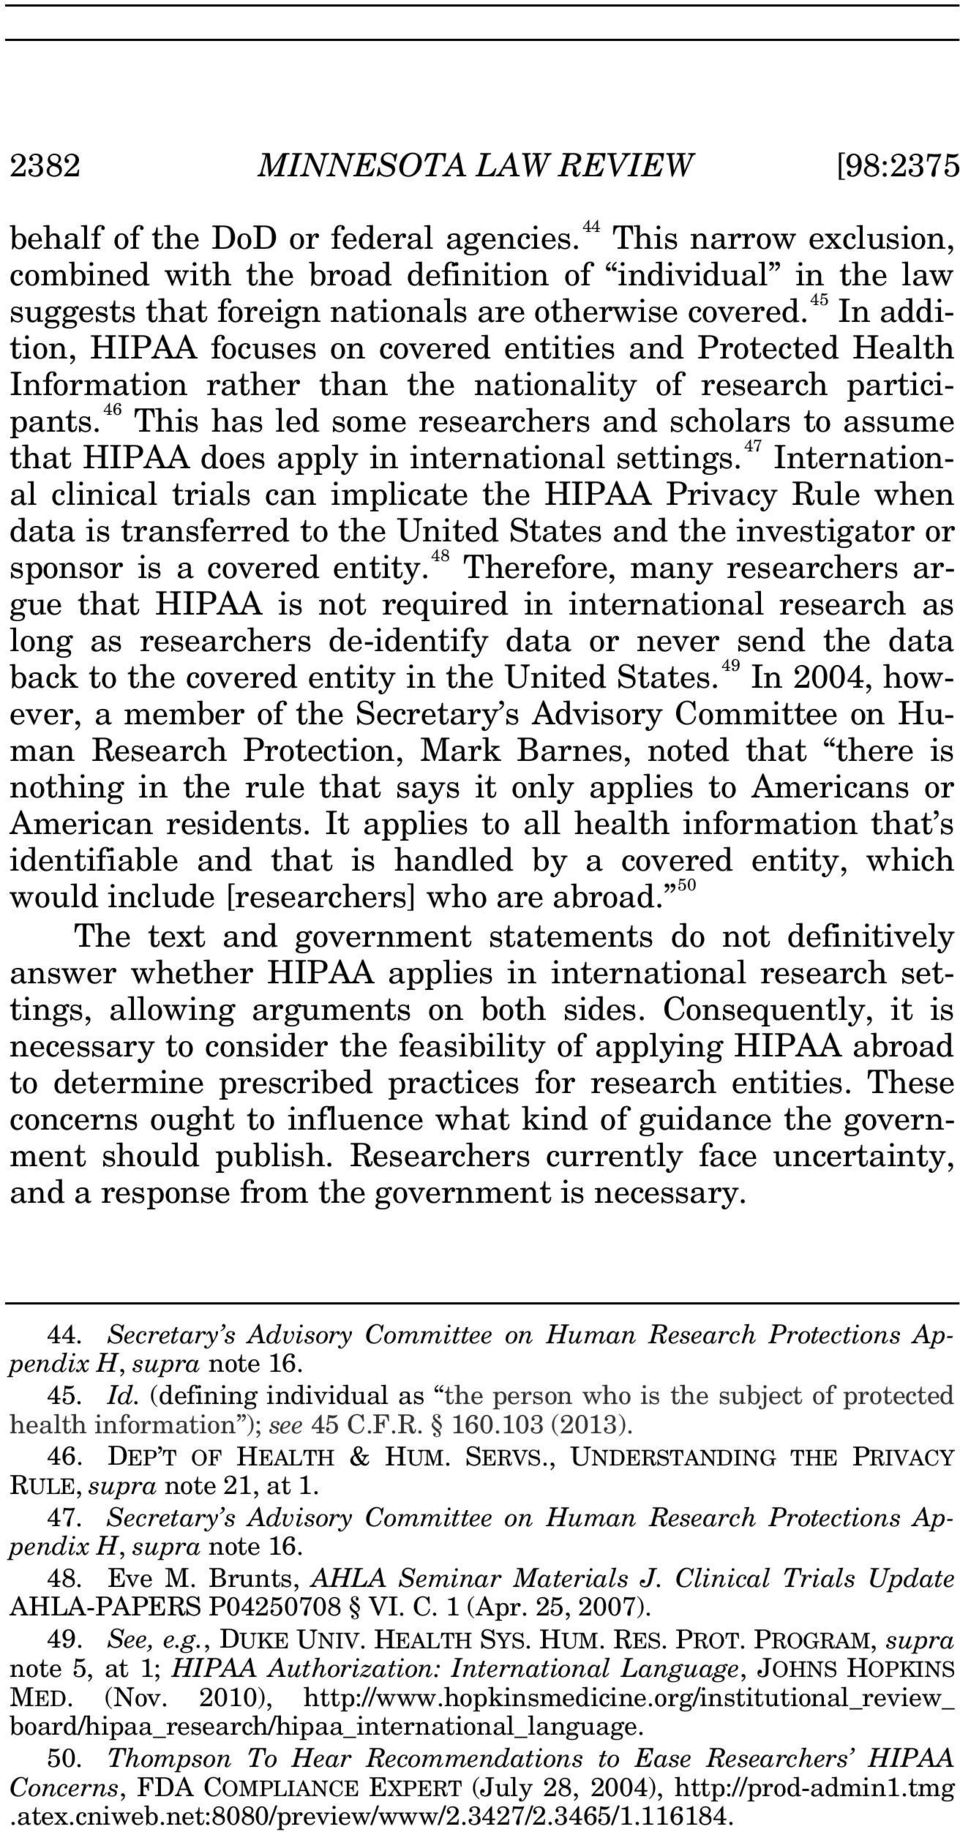 45 In addition, HIPAA focuses on covered entities and Protected Health Information rather than the nationality of research participants.